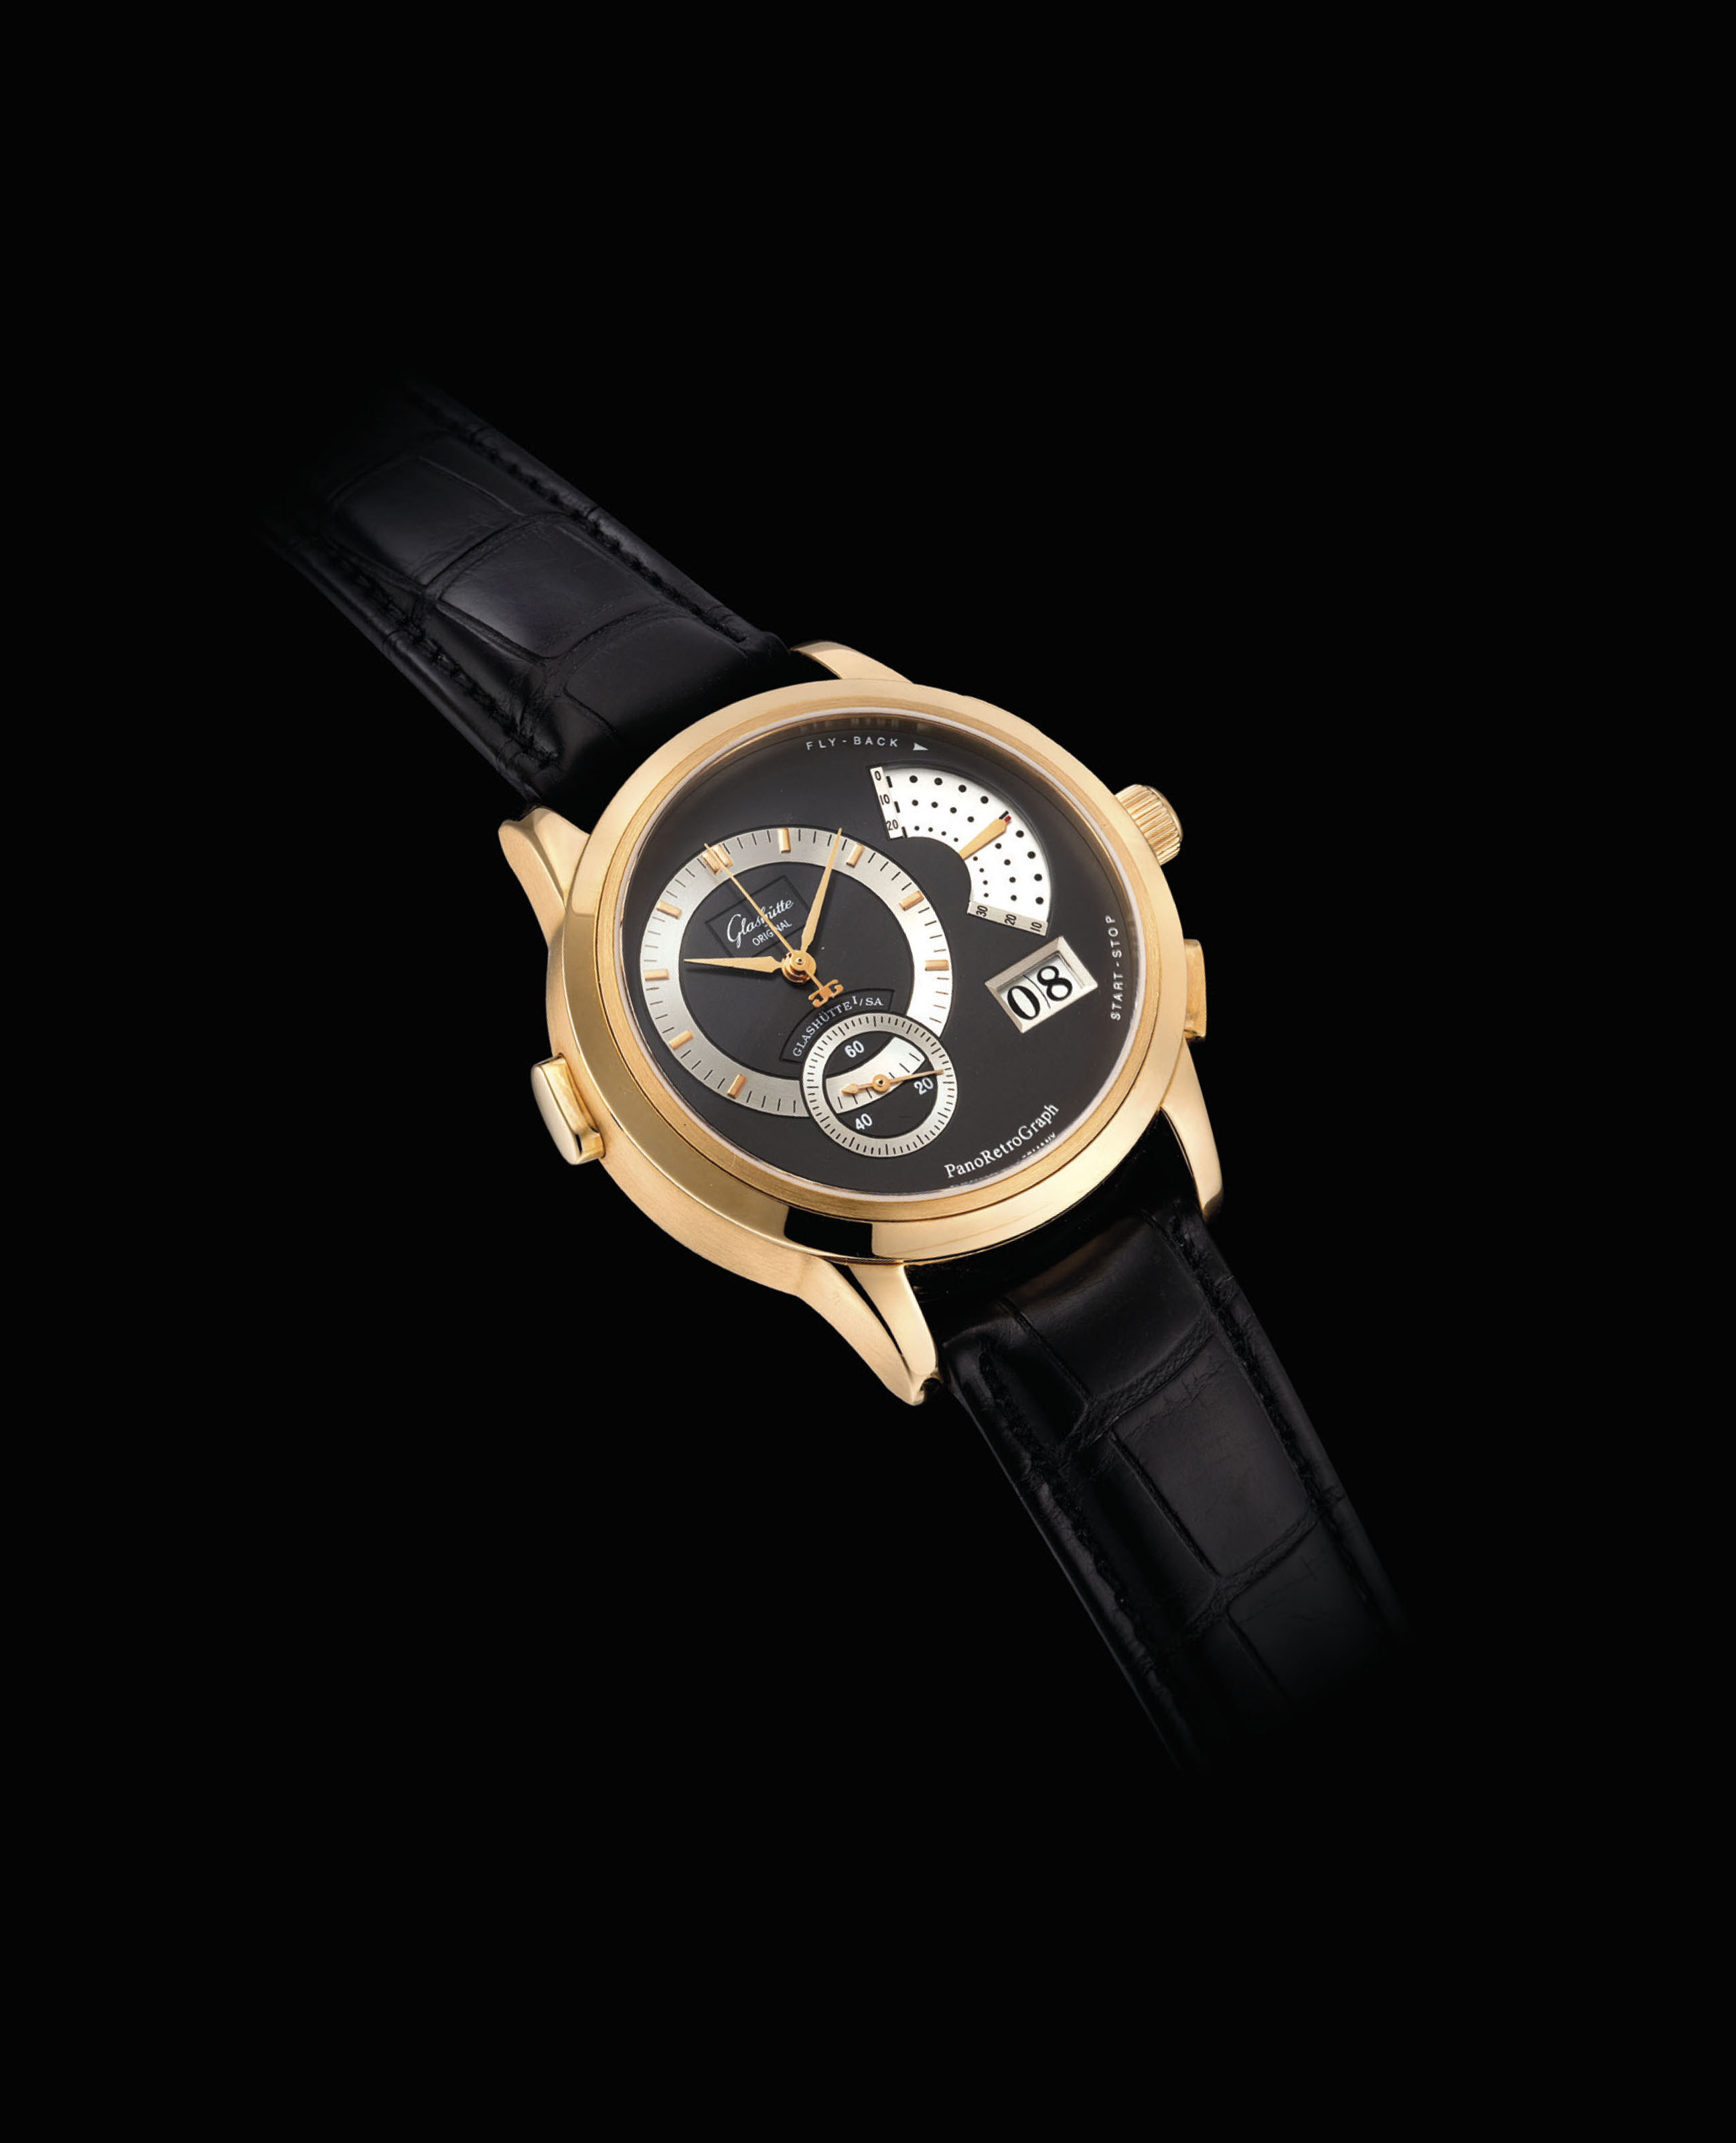 GLASHÜTTE ORIGINAL. A FINE 18K PINK GOLD FLY BACK CHRONOGRAPH WRISTWATCH WITH DATE, COUNTDOWN FUNCTION AND ACOUSTIC SIGNAL